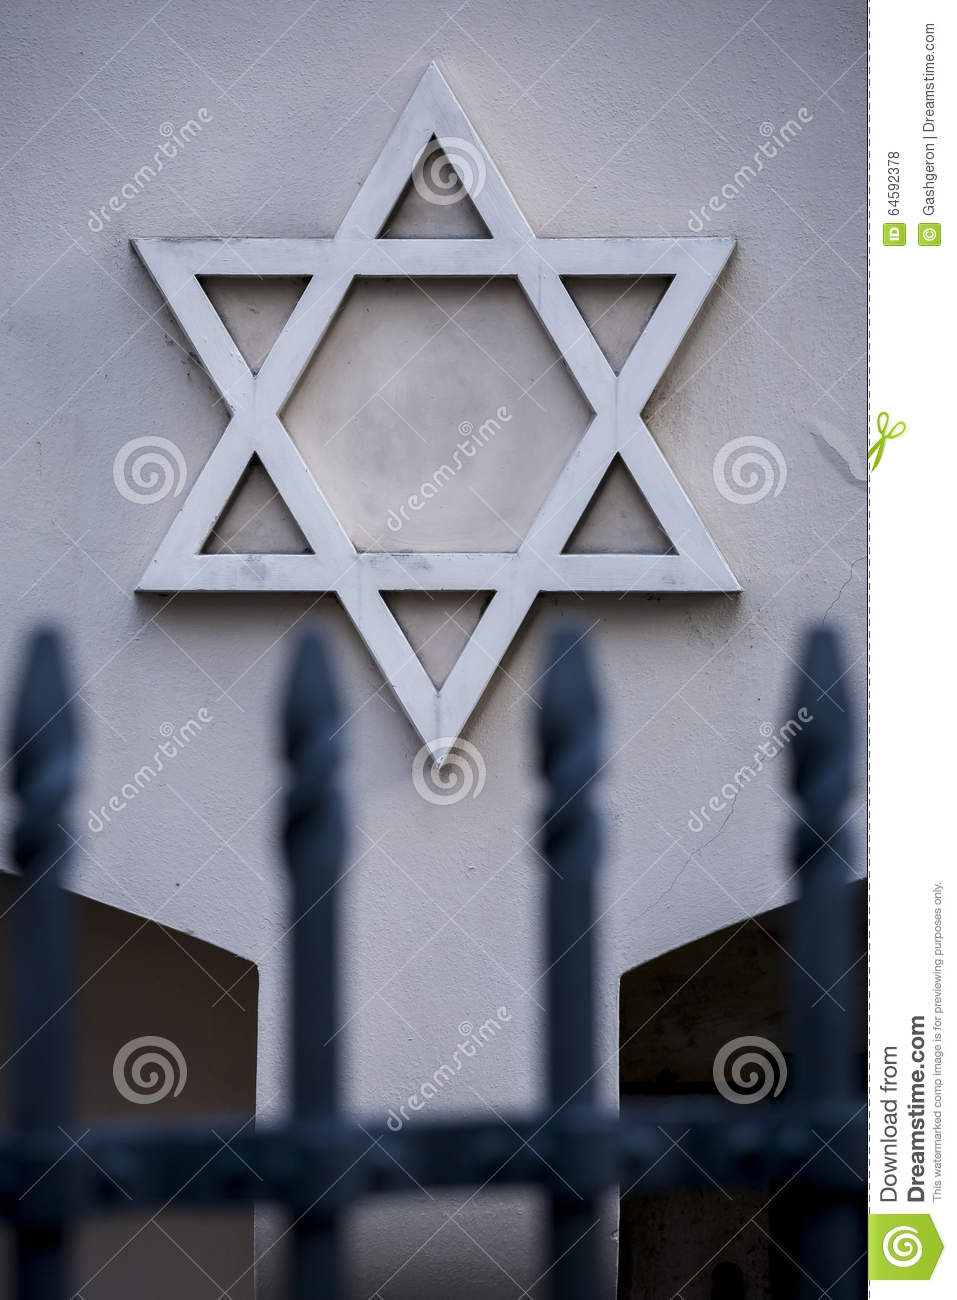 the principles of the jewish religion and the judaism as the main concept Relations among religious groups—between jews and non-jews, between muslims and christians, and among the different streams of judaism, such as orthodox, reform and conservative—are often strained.